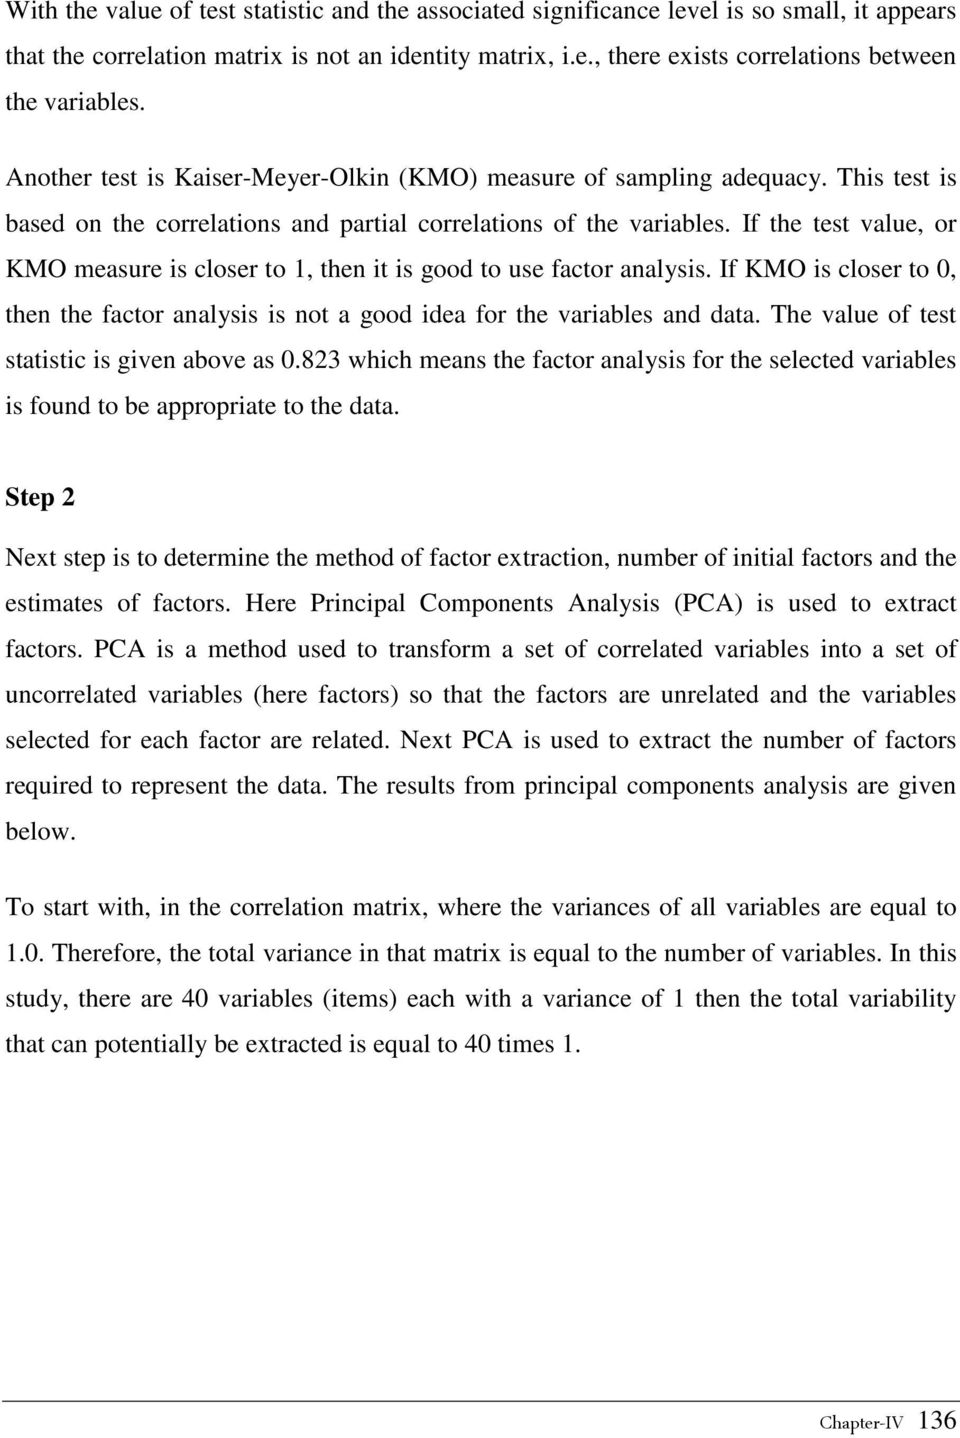 If the test value, or KMO measure is closer to 1, then it is good to use factor analysis. If KMO is closer to 0, then the factor analysis is not a good idea for the variables and data.